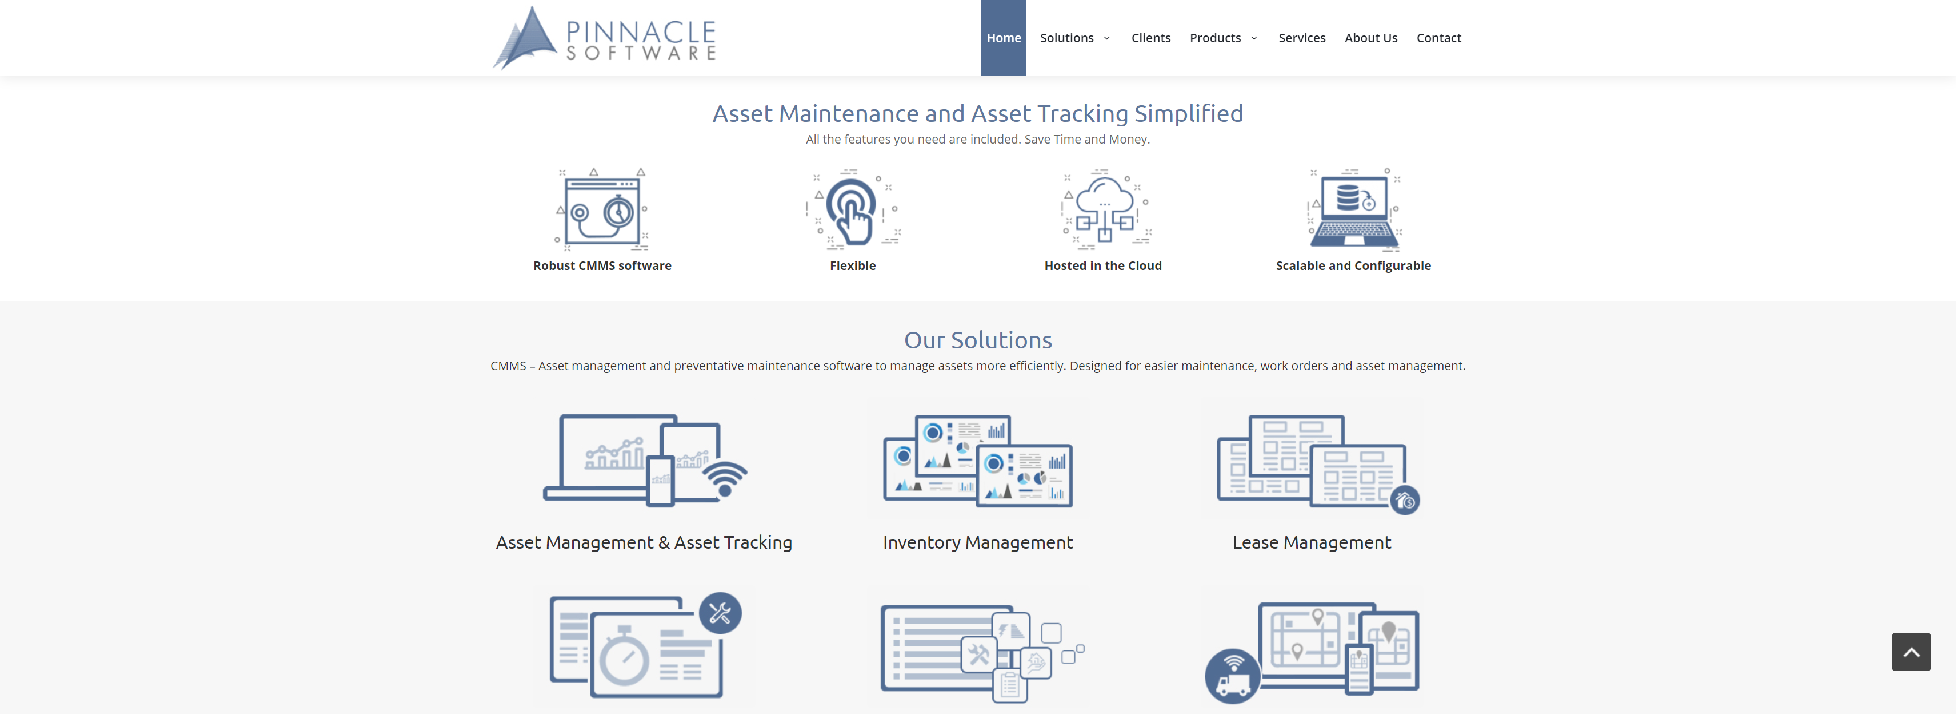 Top 5 Best Small Business Asset Management Software List - 2019